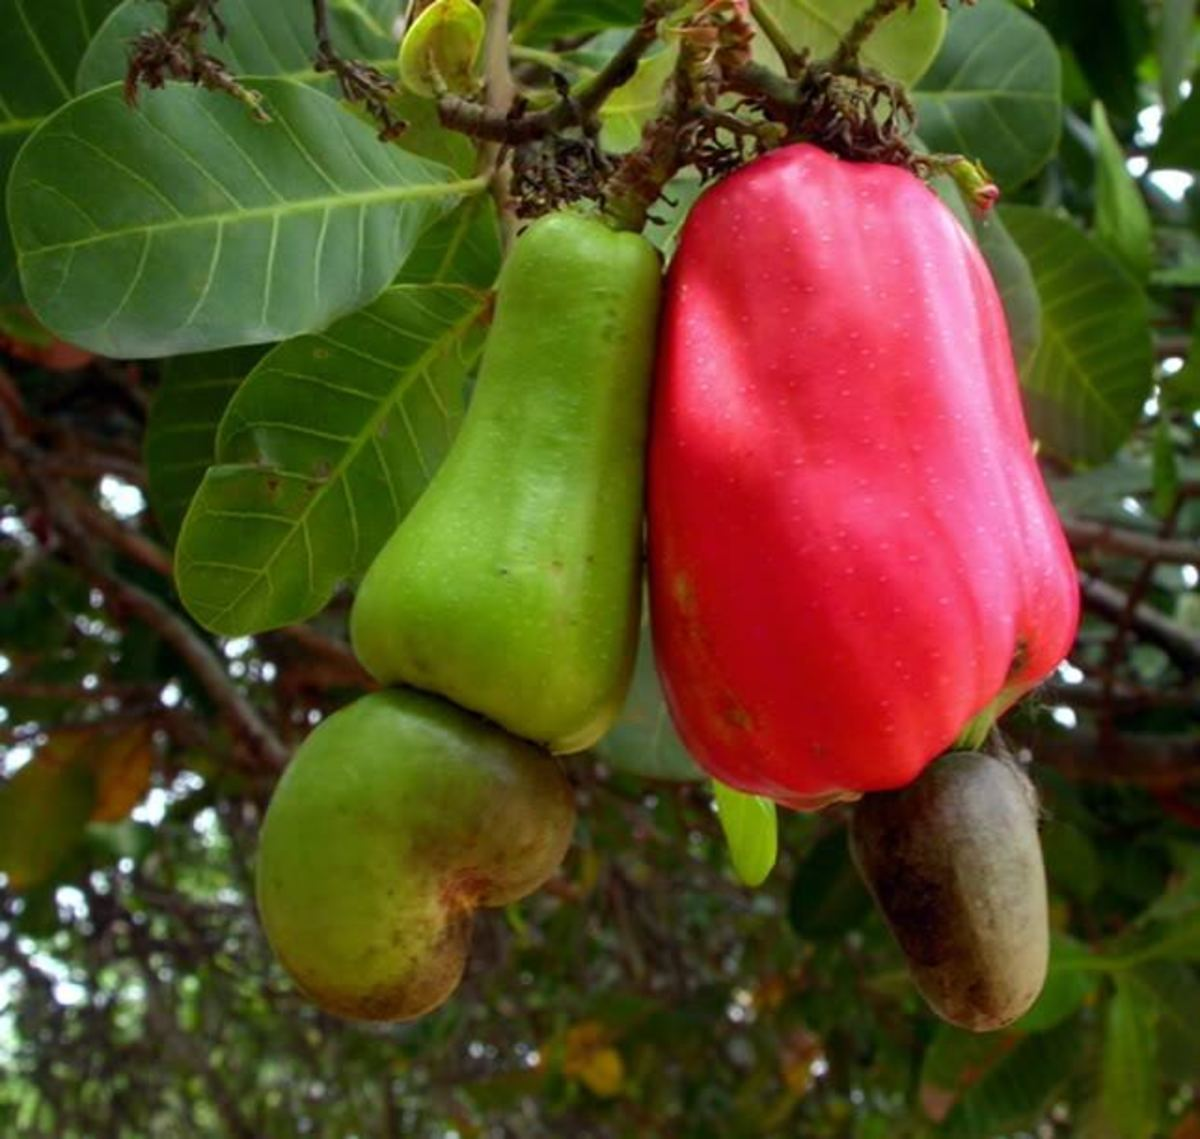 A young cashew fruit and a ripe one.